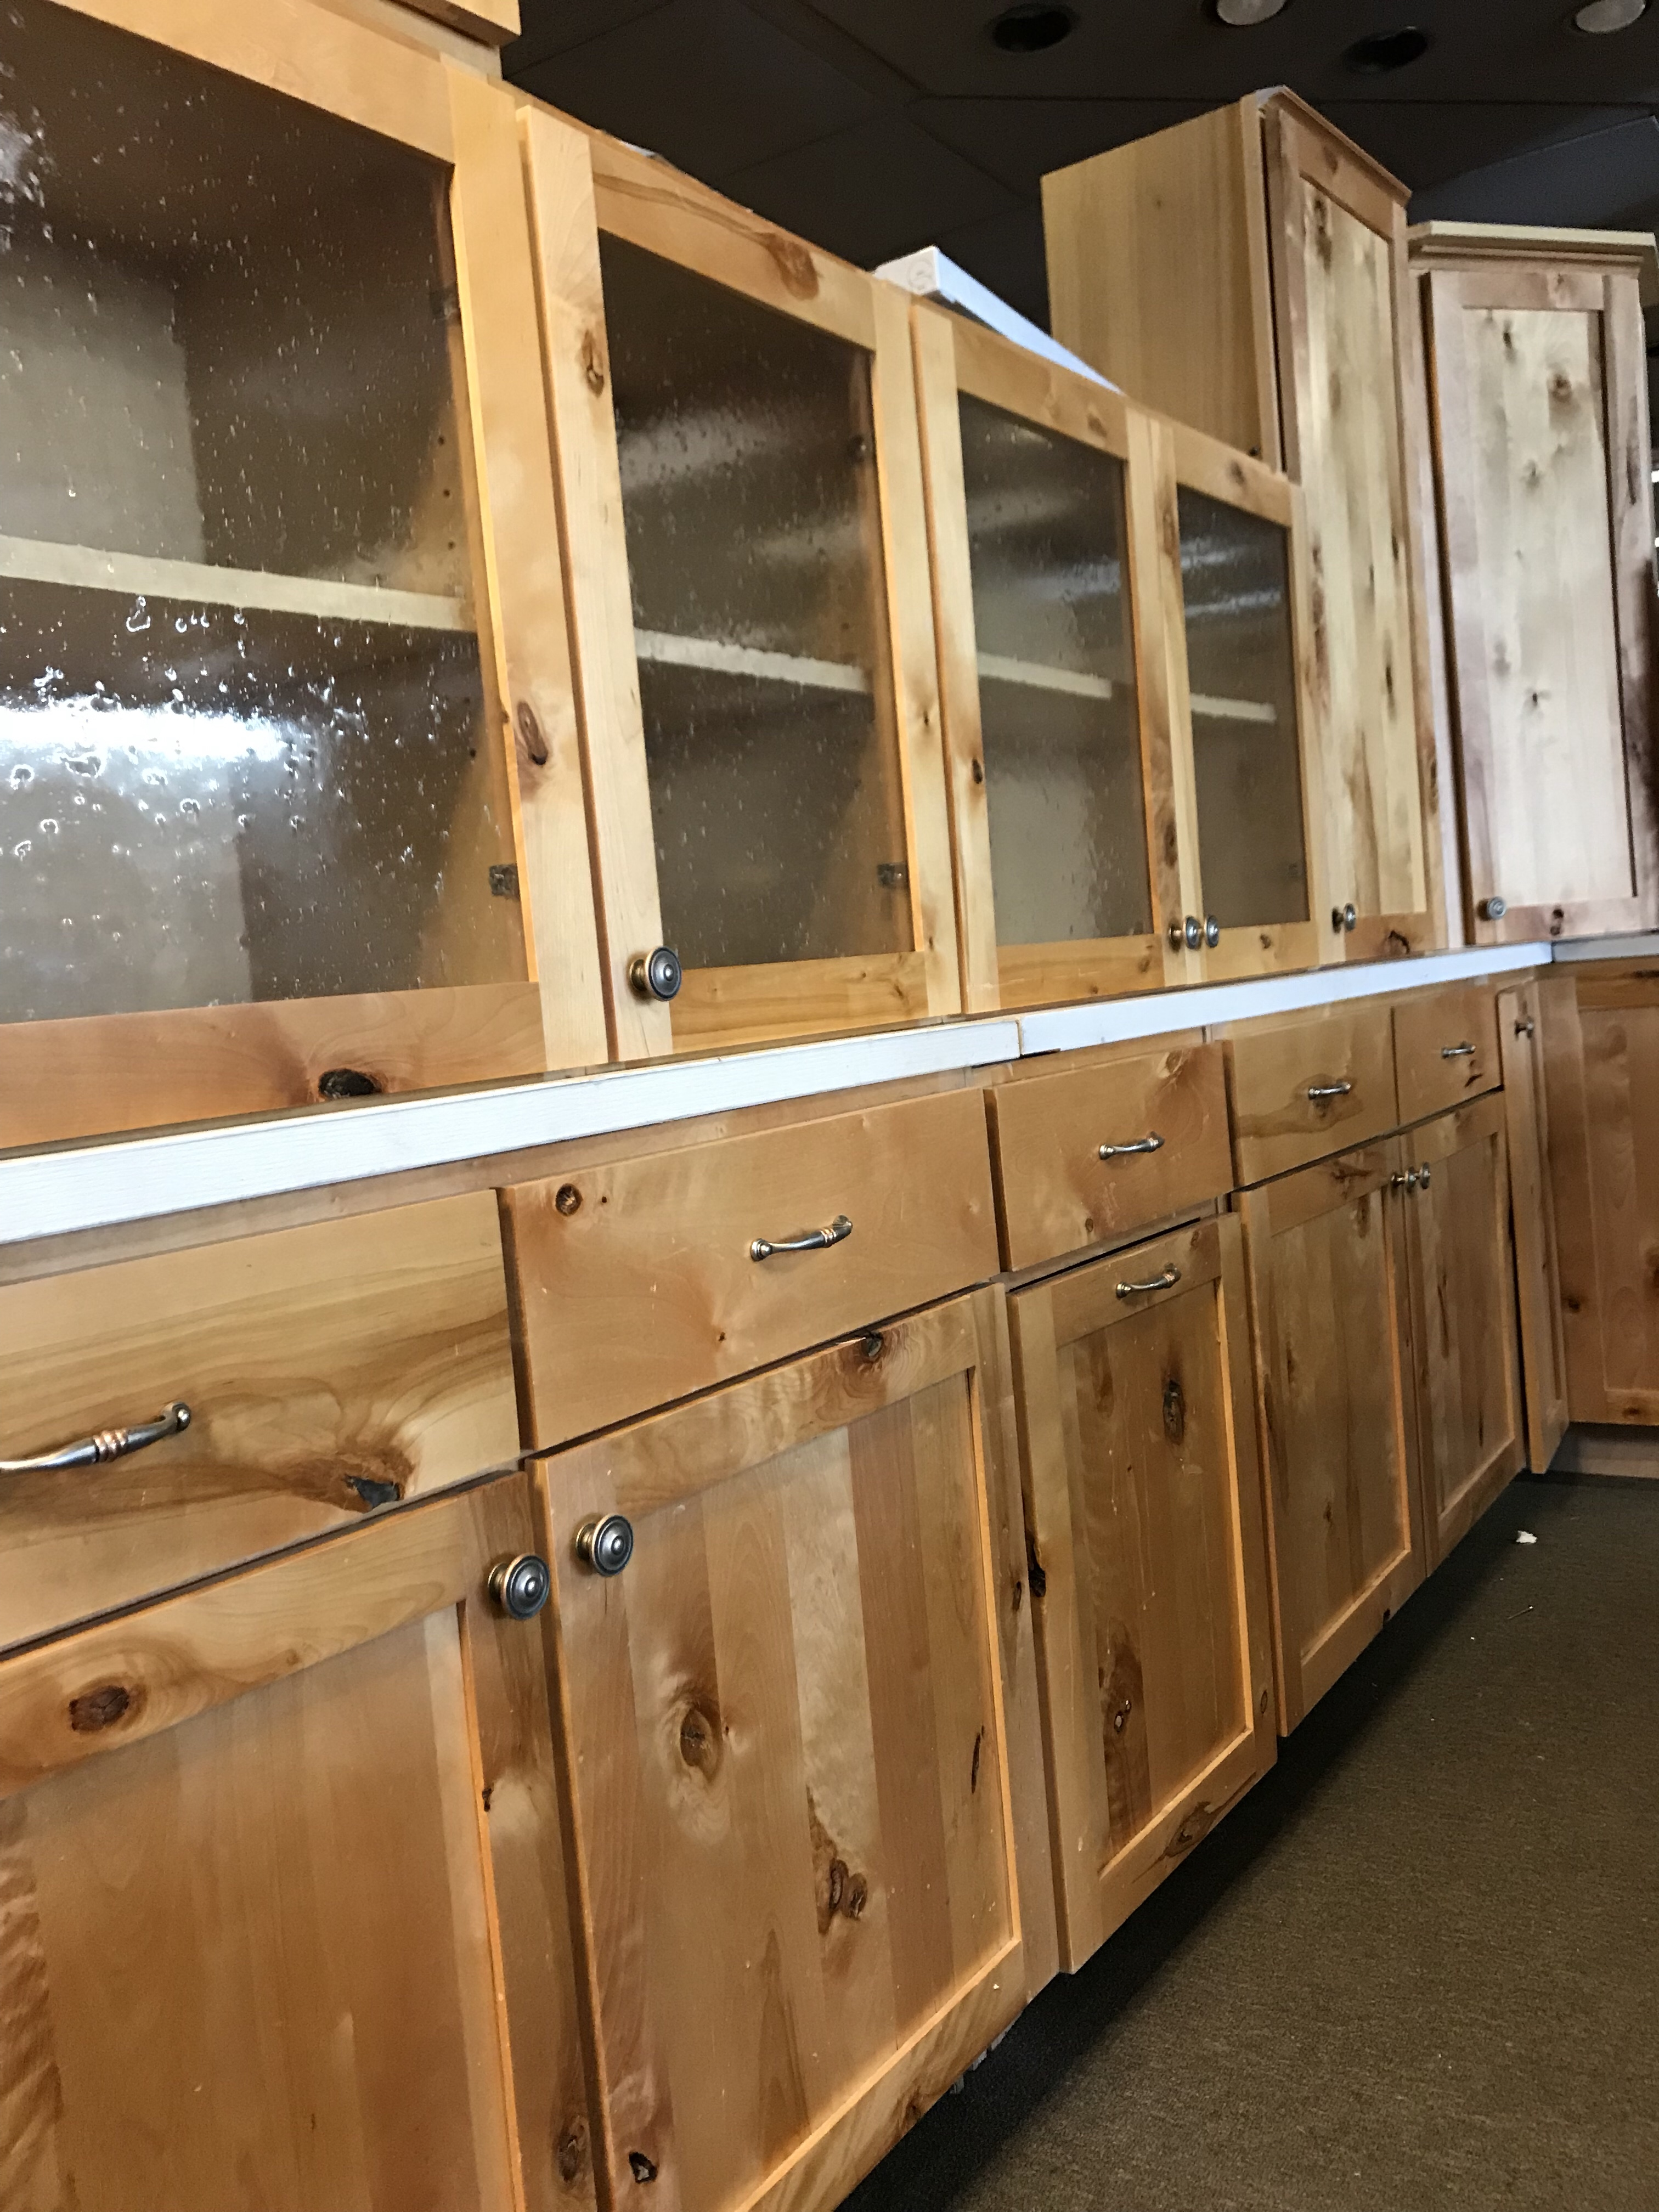 Beautiful 18 Piece Pine Cabinet Set Just Arrived Off Of Our Truck. It Is In  Good Condition But Does Need A Little Work. Itu0027s Cabinet Season At Budu0027s  With ...